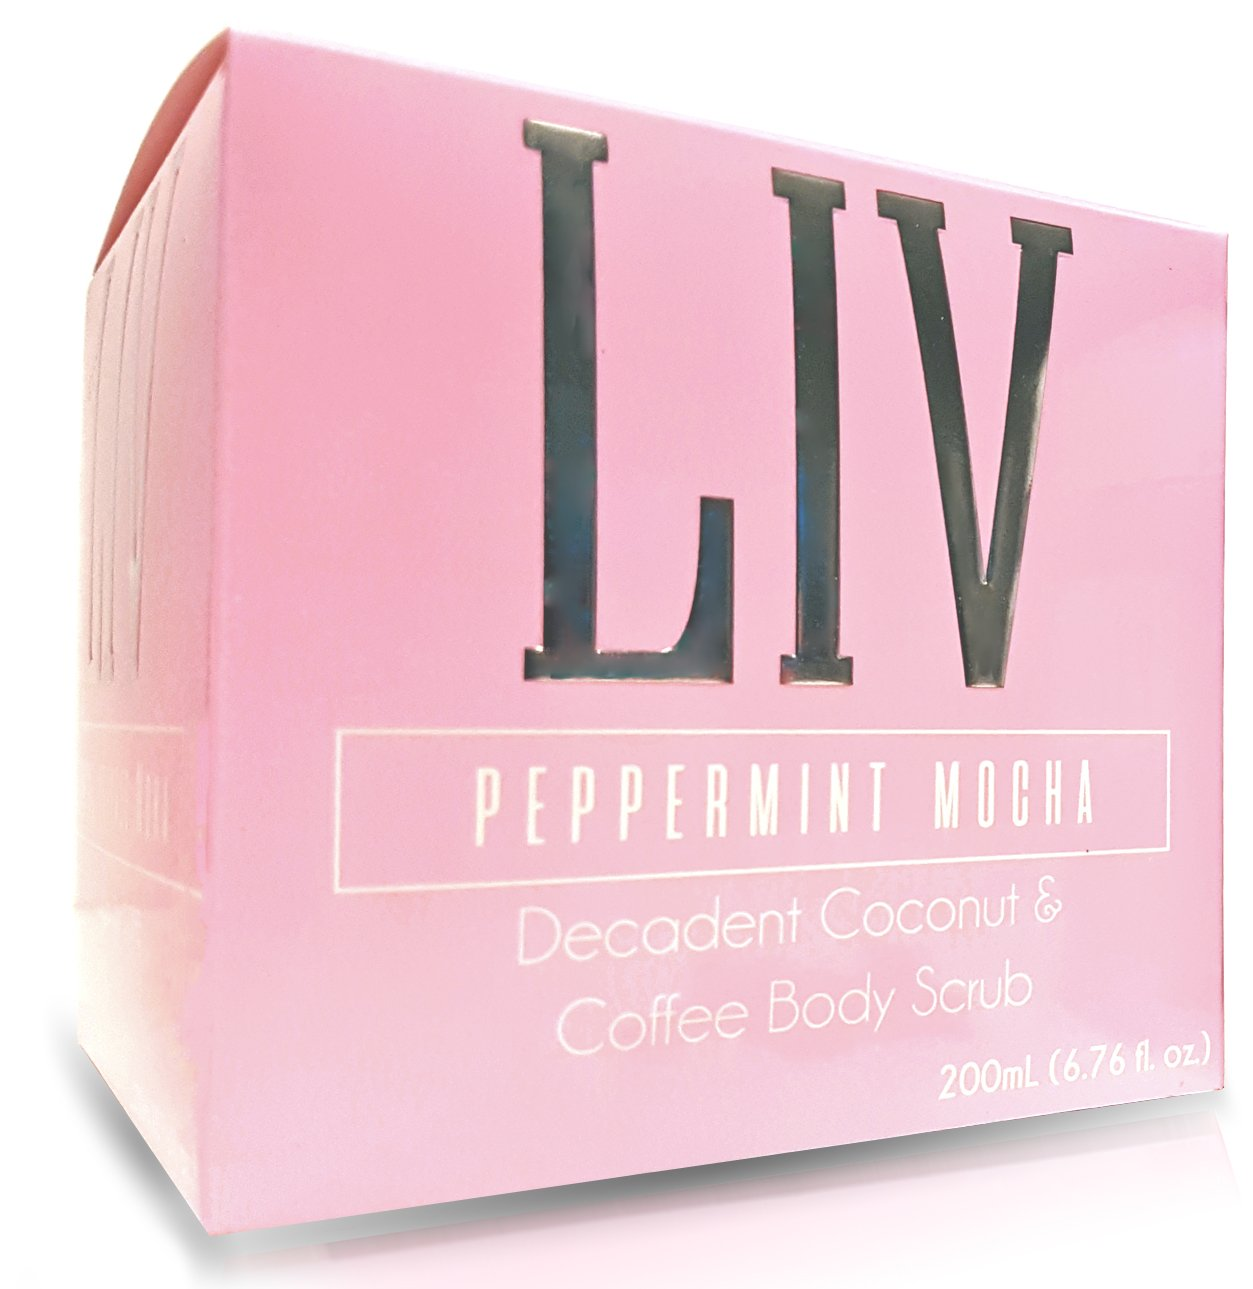 Organic Coconut Coffee Body Scrub by LIV Lavish Goods - with Sea Salt, Coconut Oil & Peppermint Oil - Luxury Skin Care - Removes Dead Skin, Moisturizes, Reduces Cellulite and Leaves Skin Soft and Silky